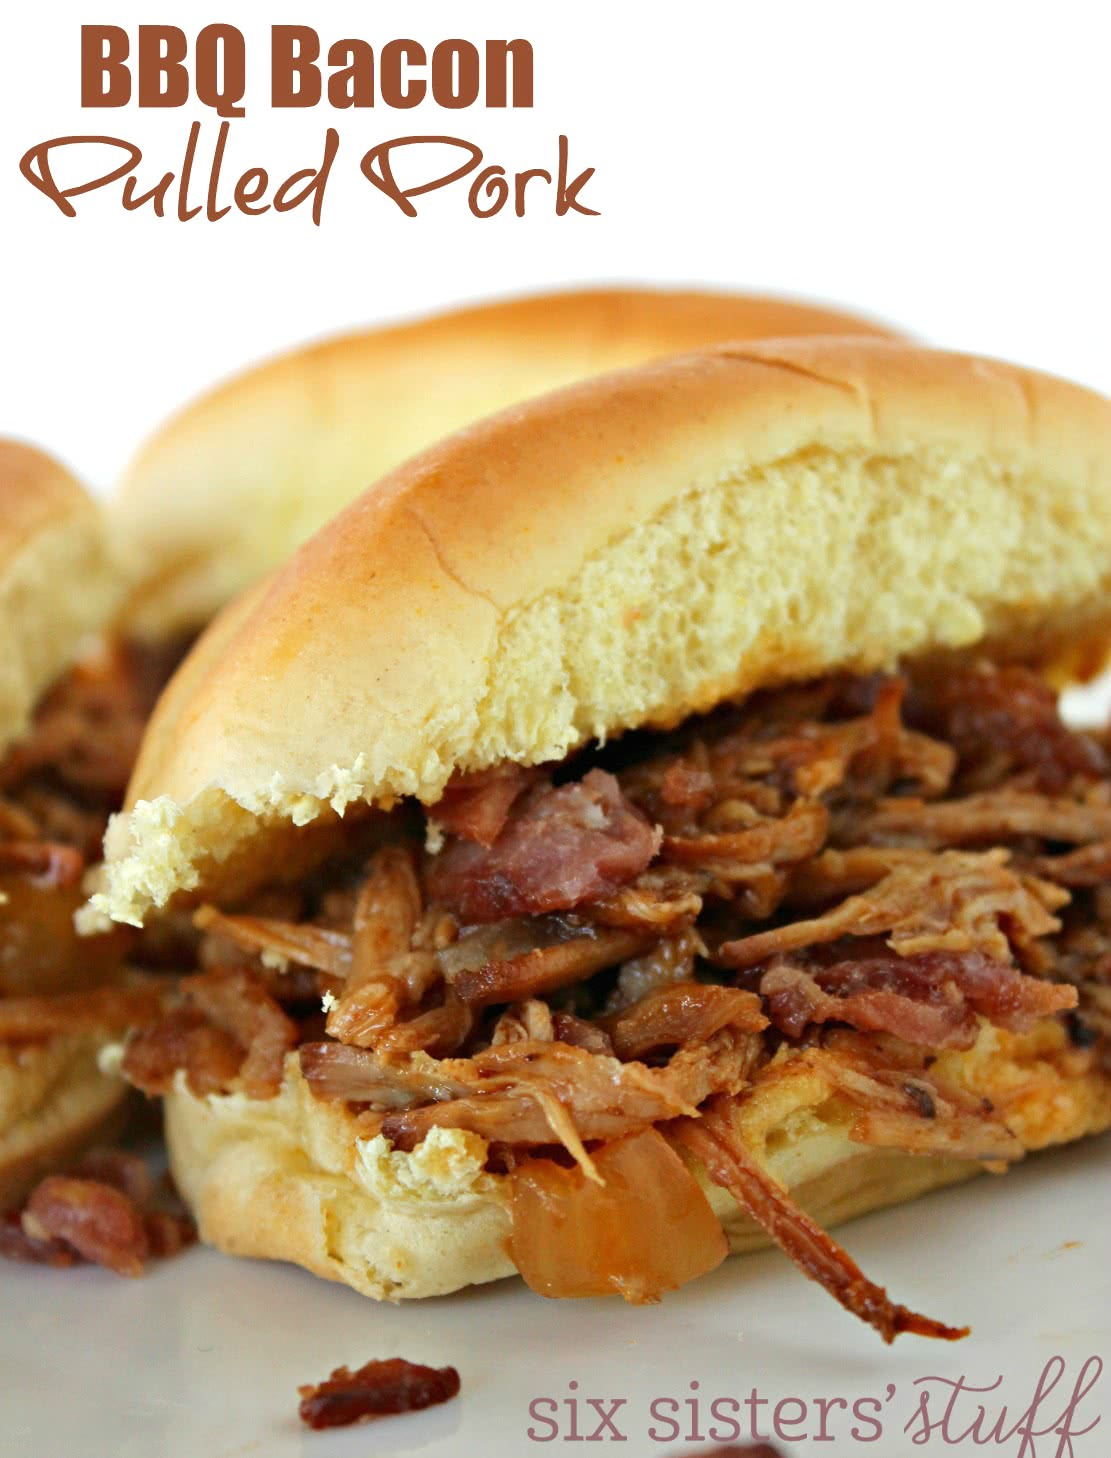 BBQ Bacon Pulled Pork